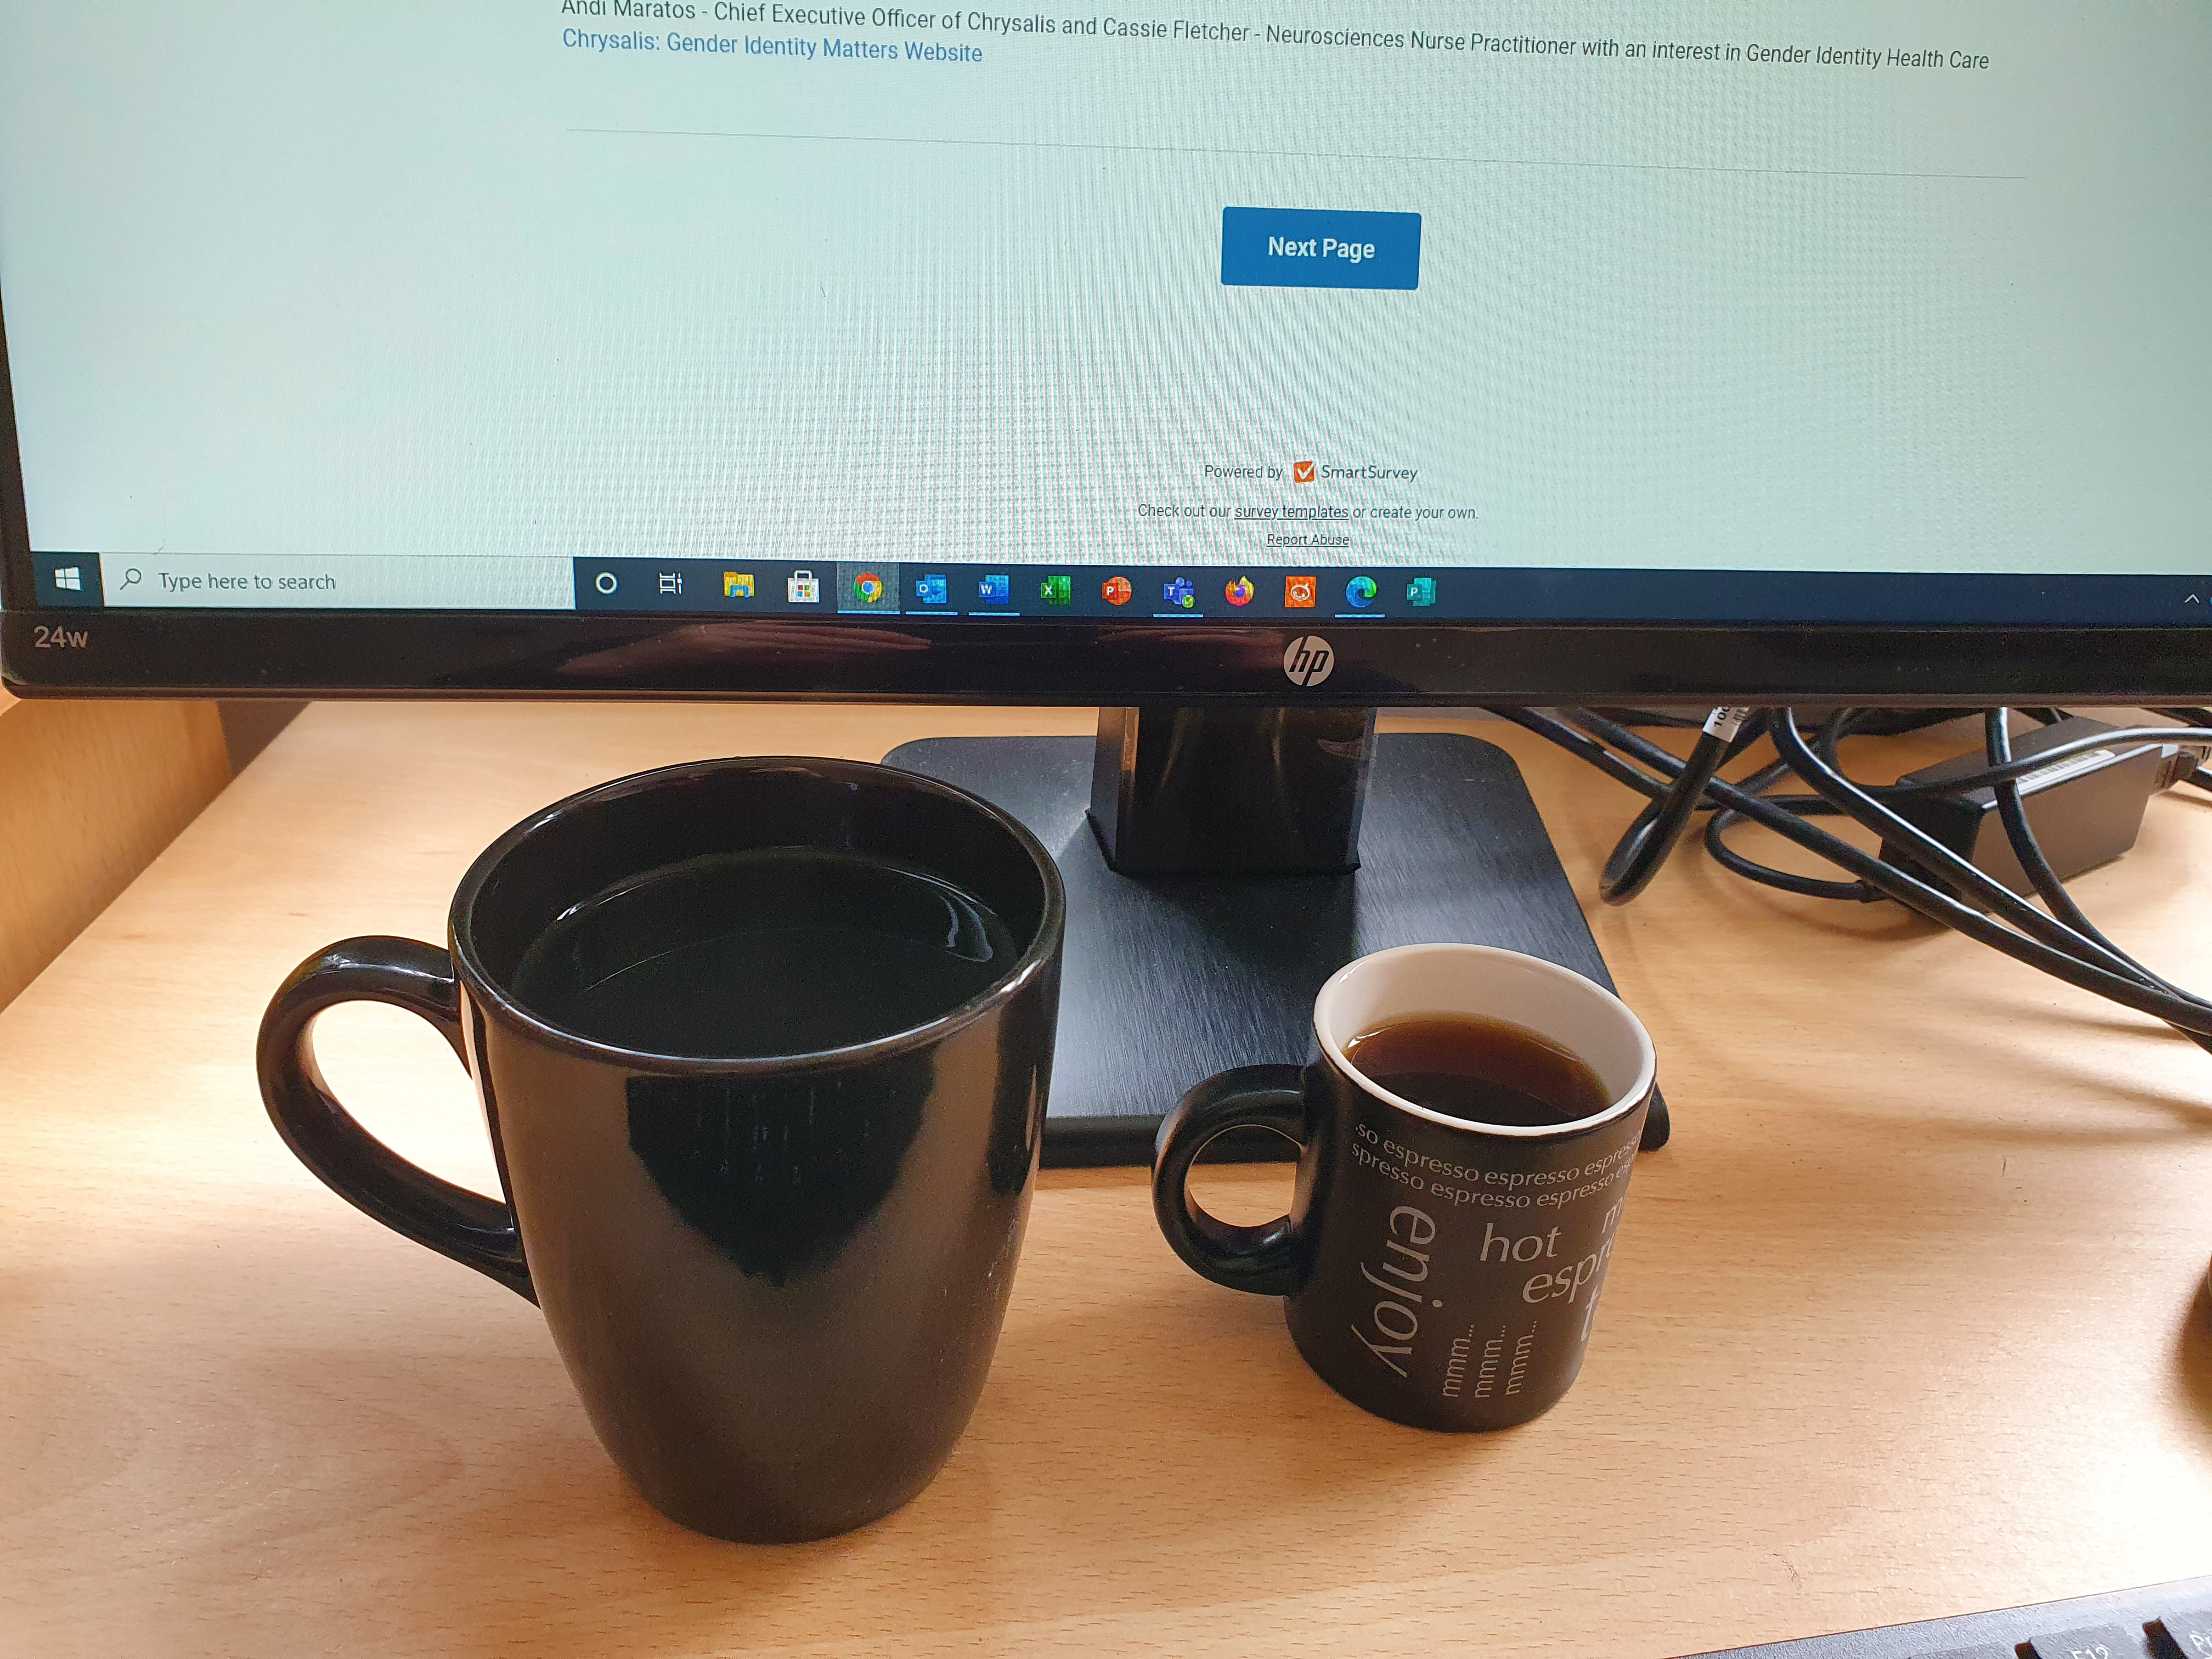 Large and small coffee cups in front of monitor